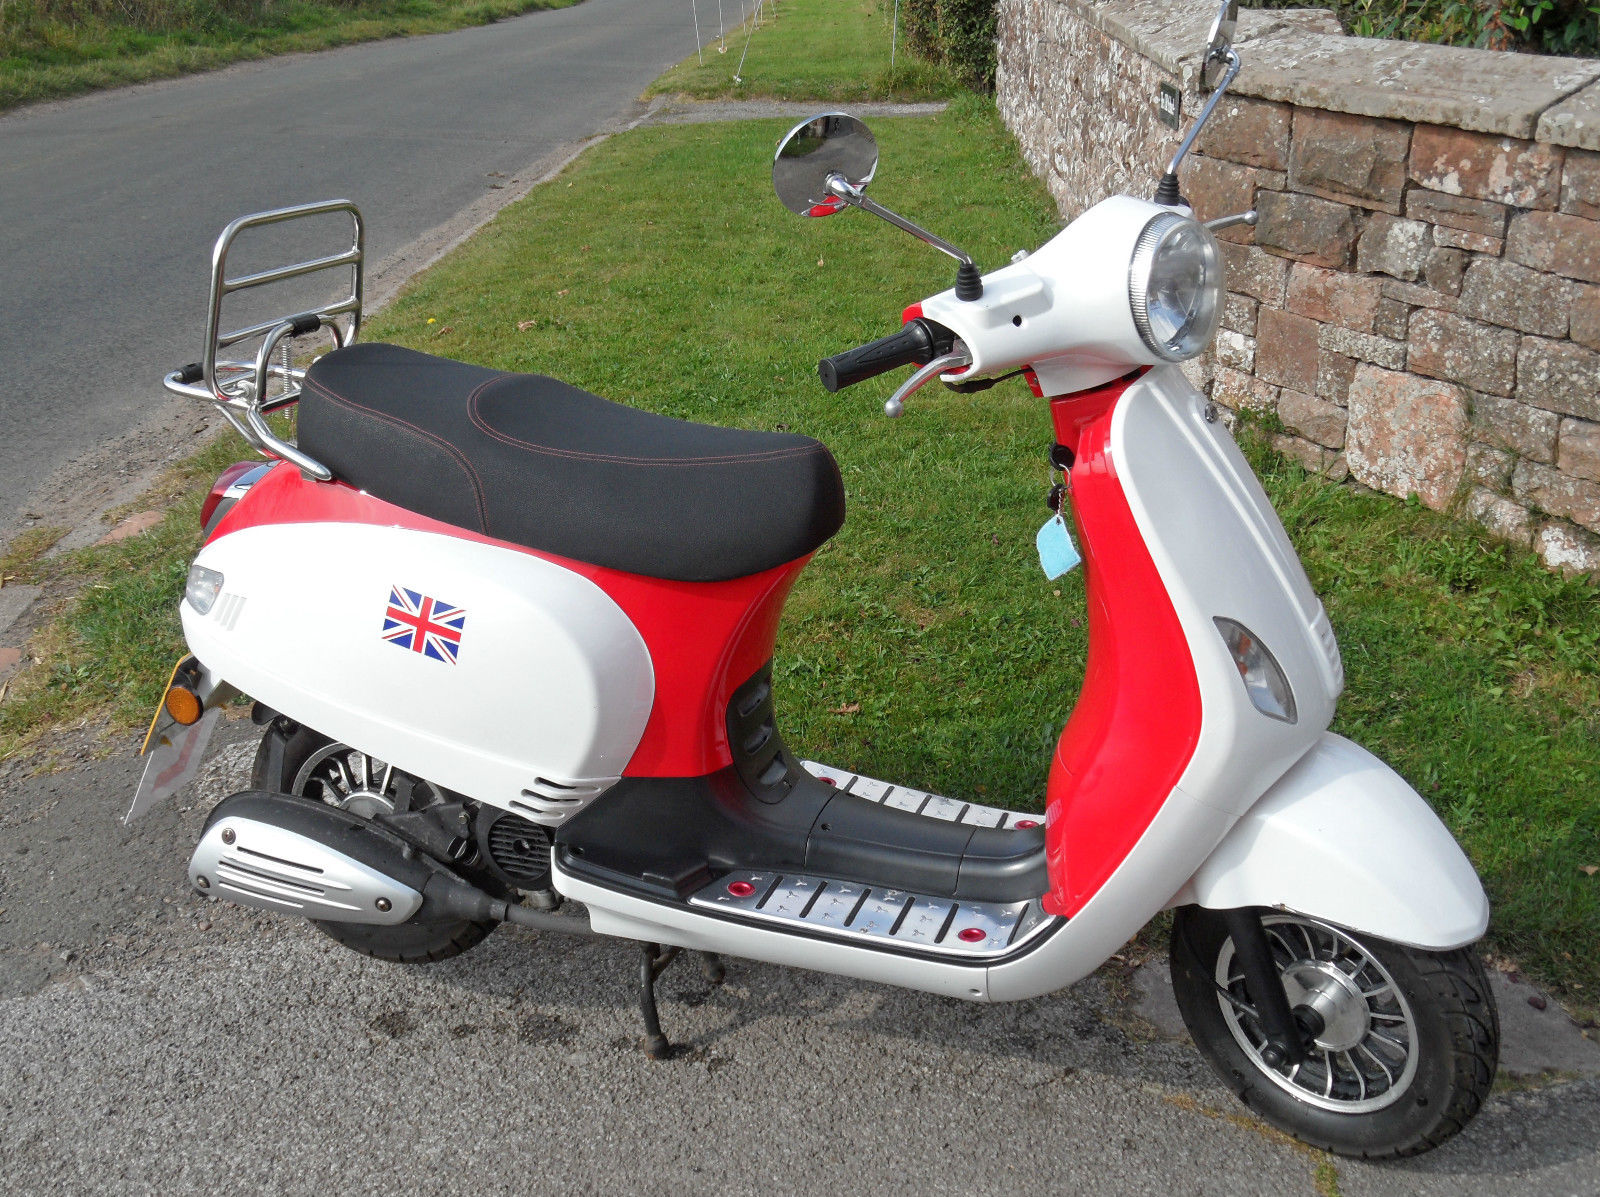 2013 red white lintex retro classic 50cc qt 12 scooter. Black Bedroom Furniture Sets. Home Design Ideas